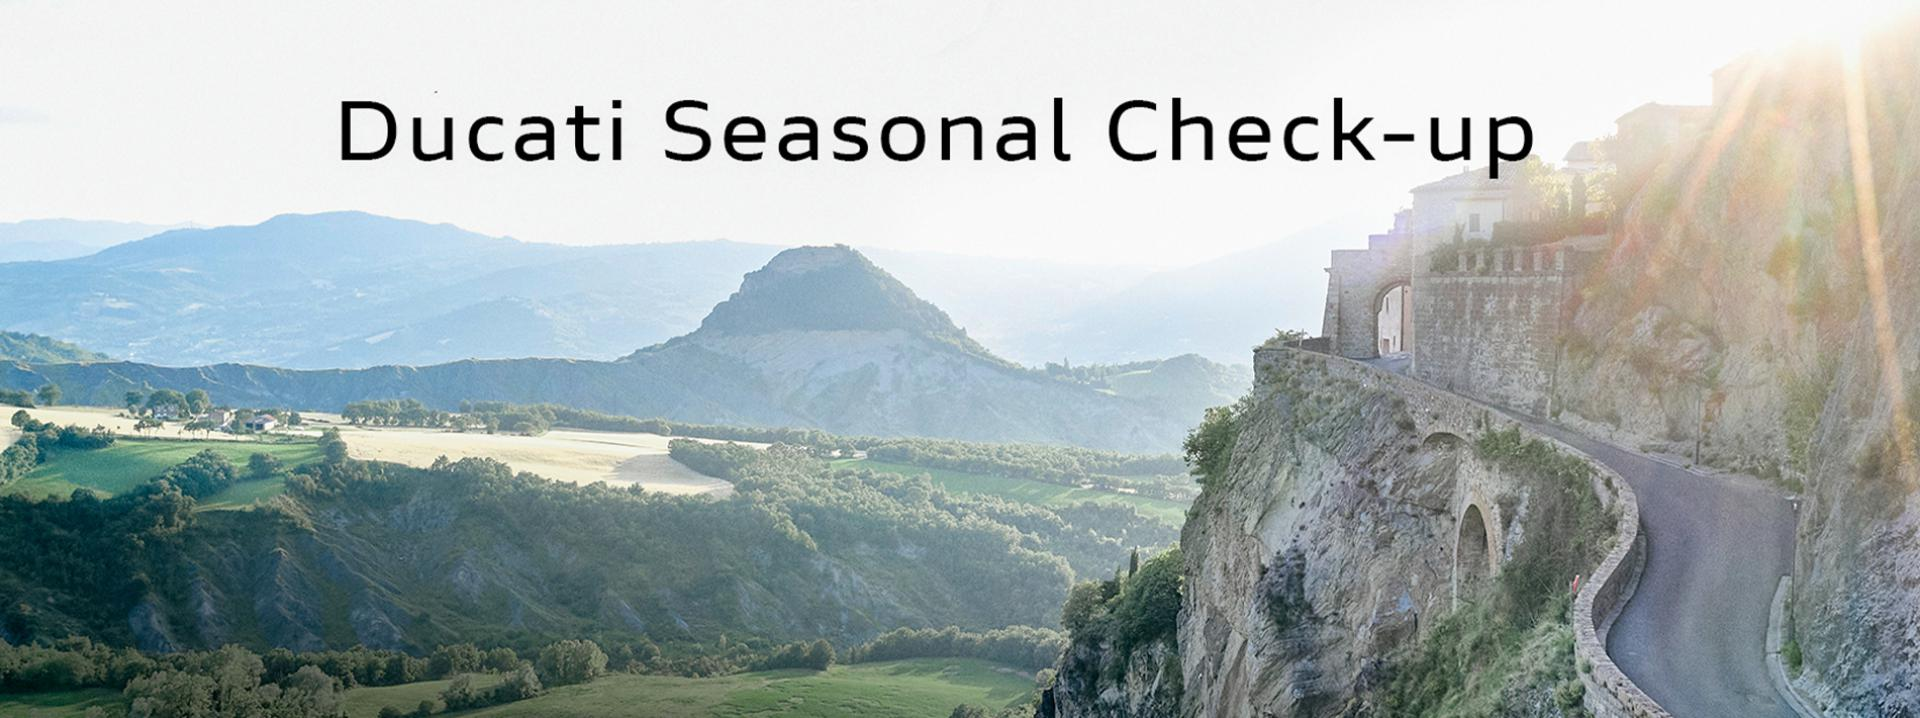 Ducati-seasonal-checkup3.jpg